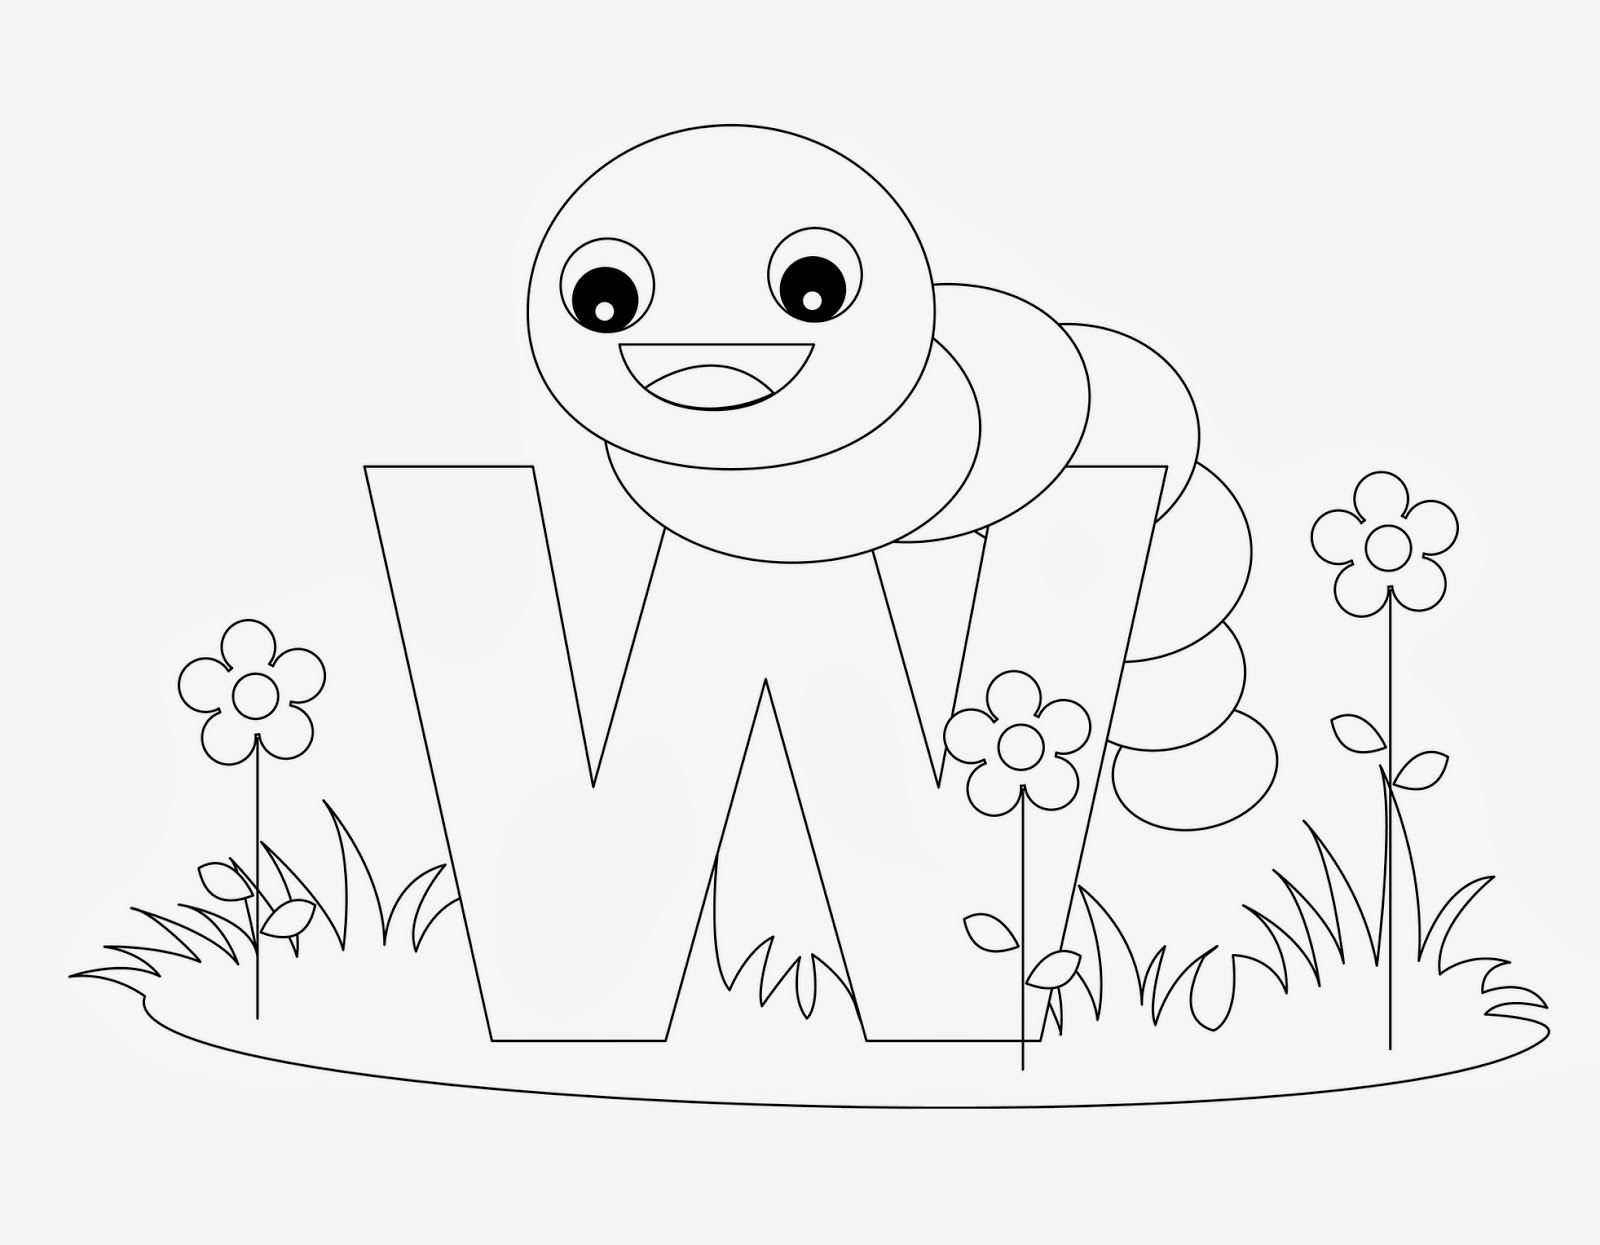 printable Alphabet Coloring Pages Worm